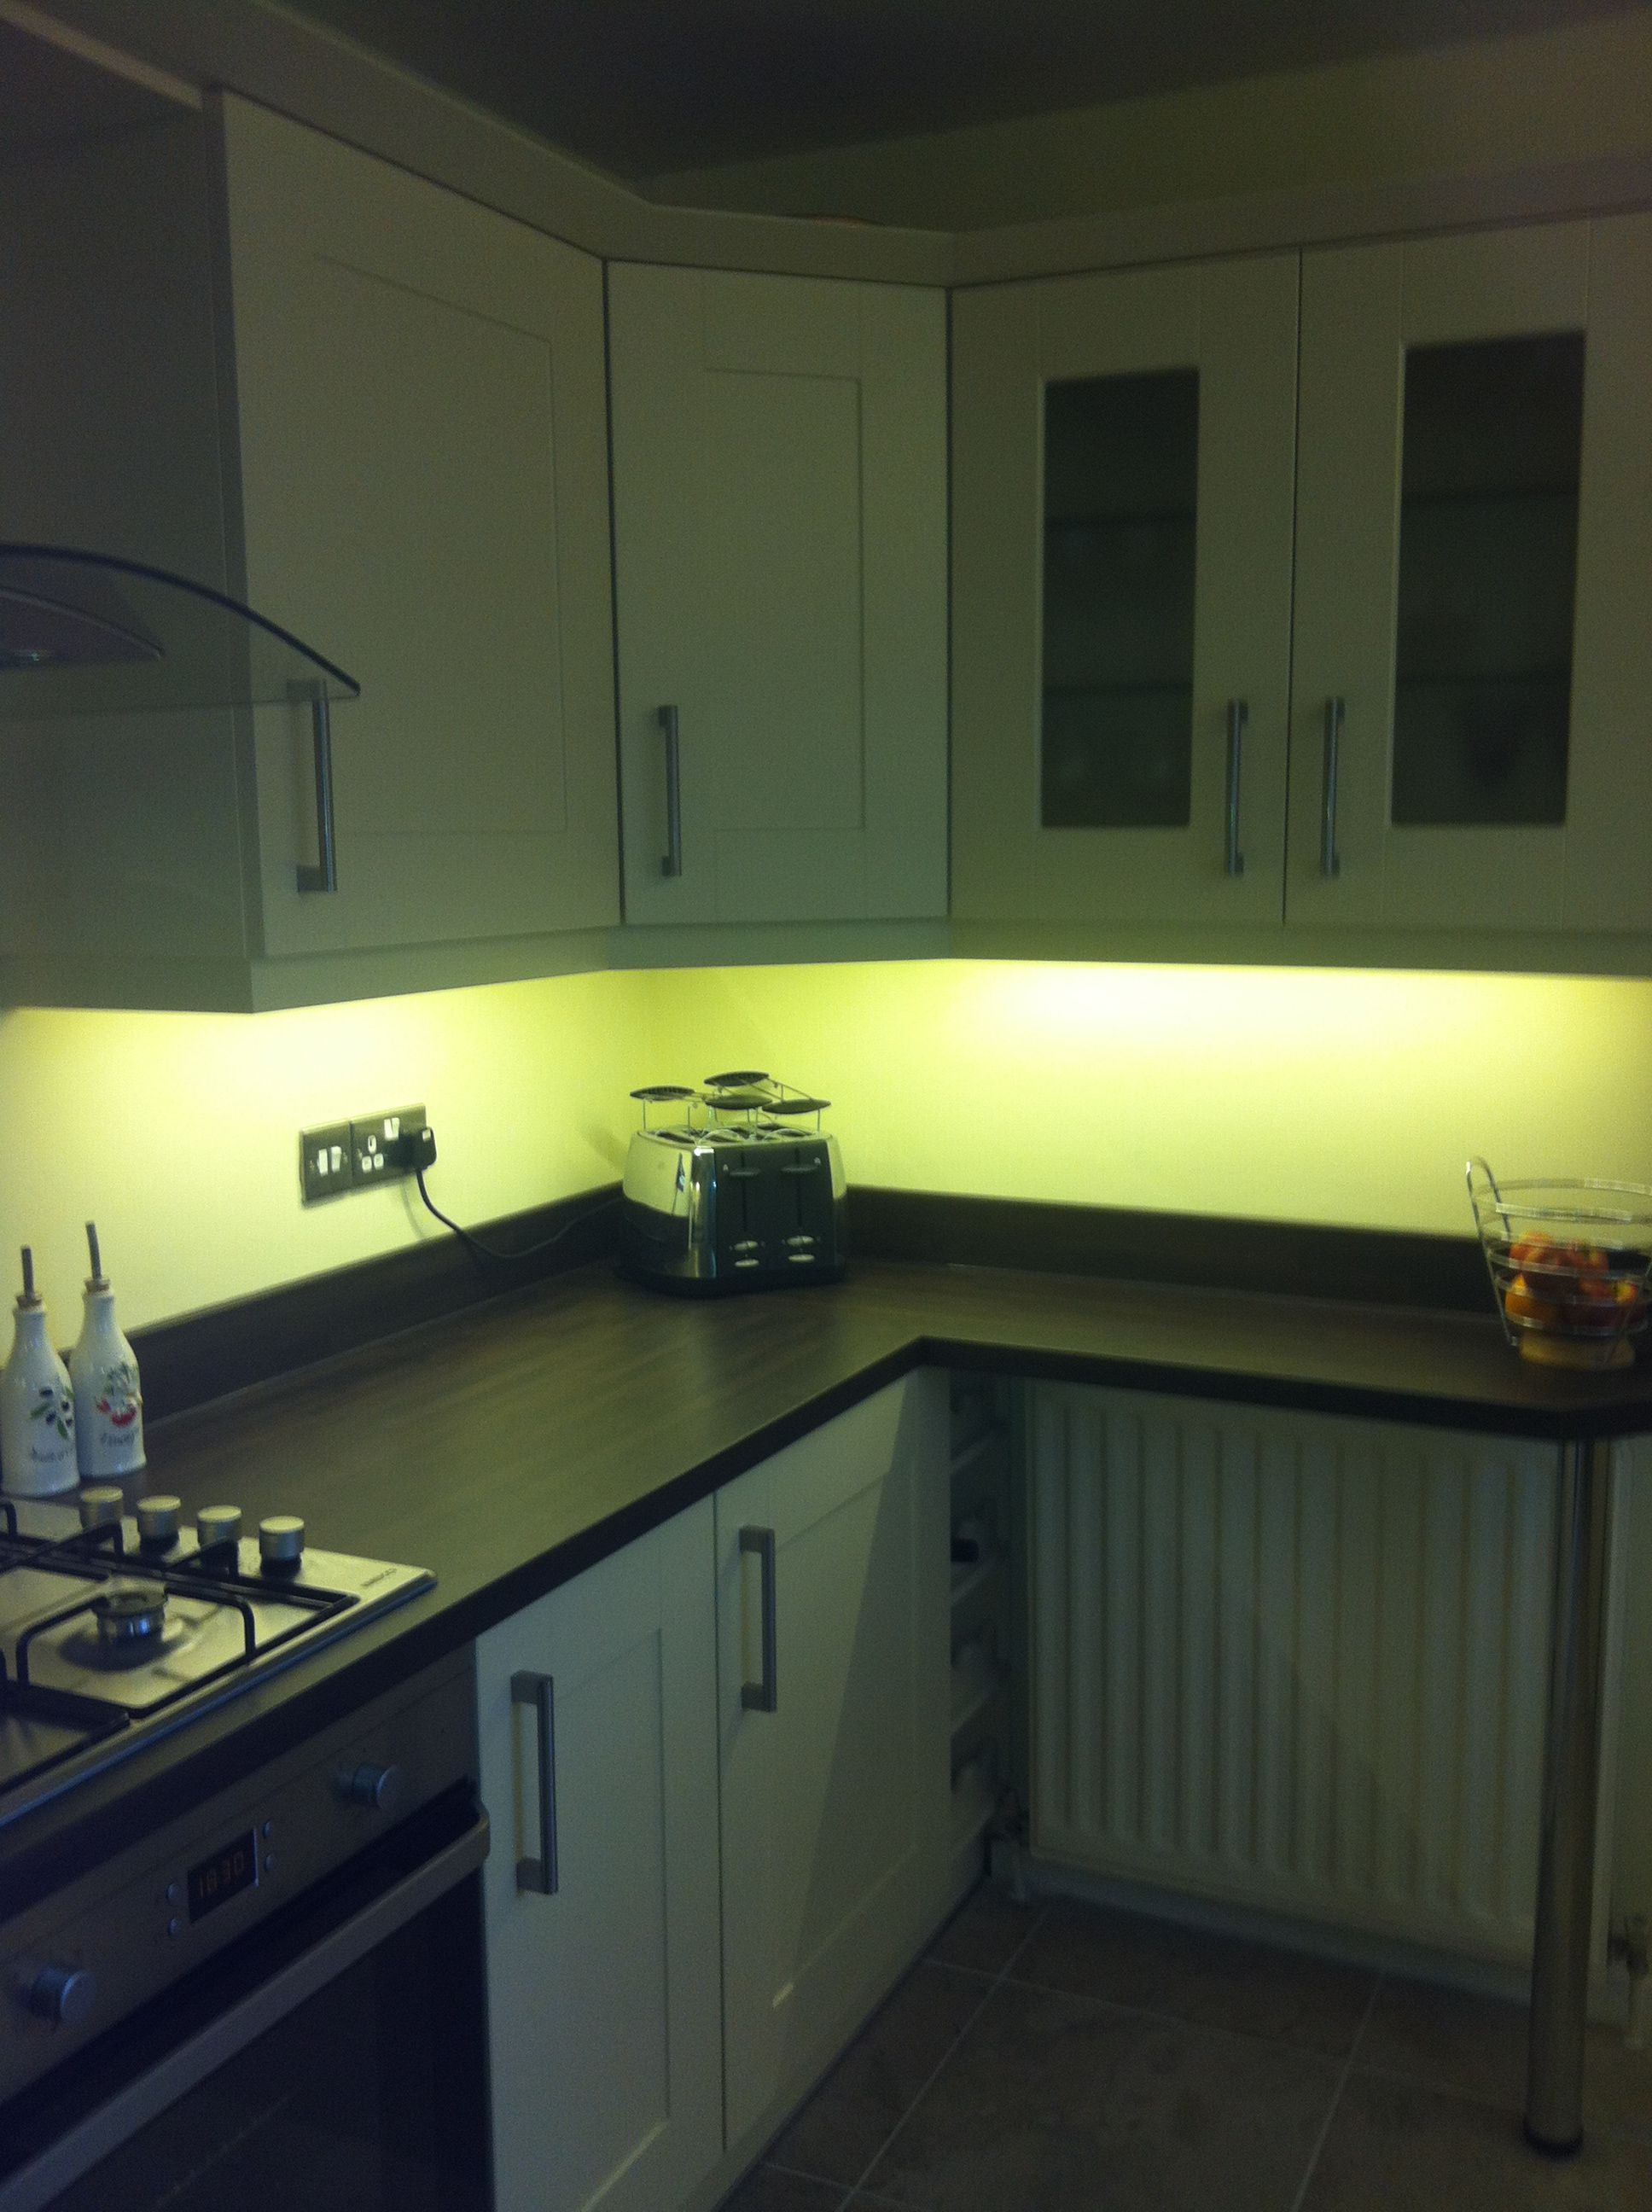 LED strip lights for under cupboard kitchen lights in warm white